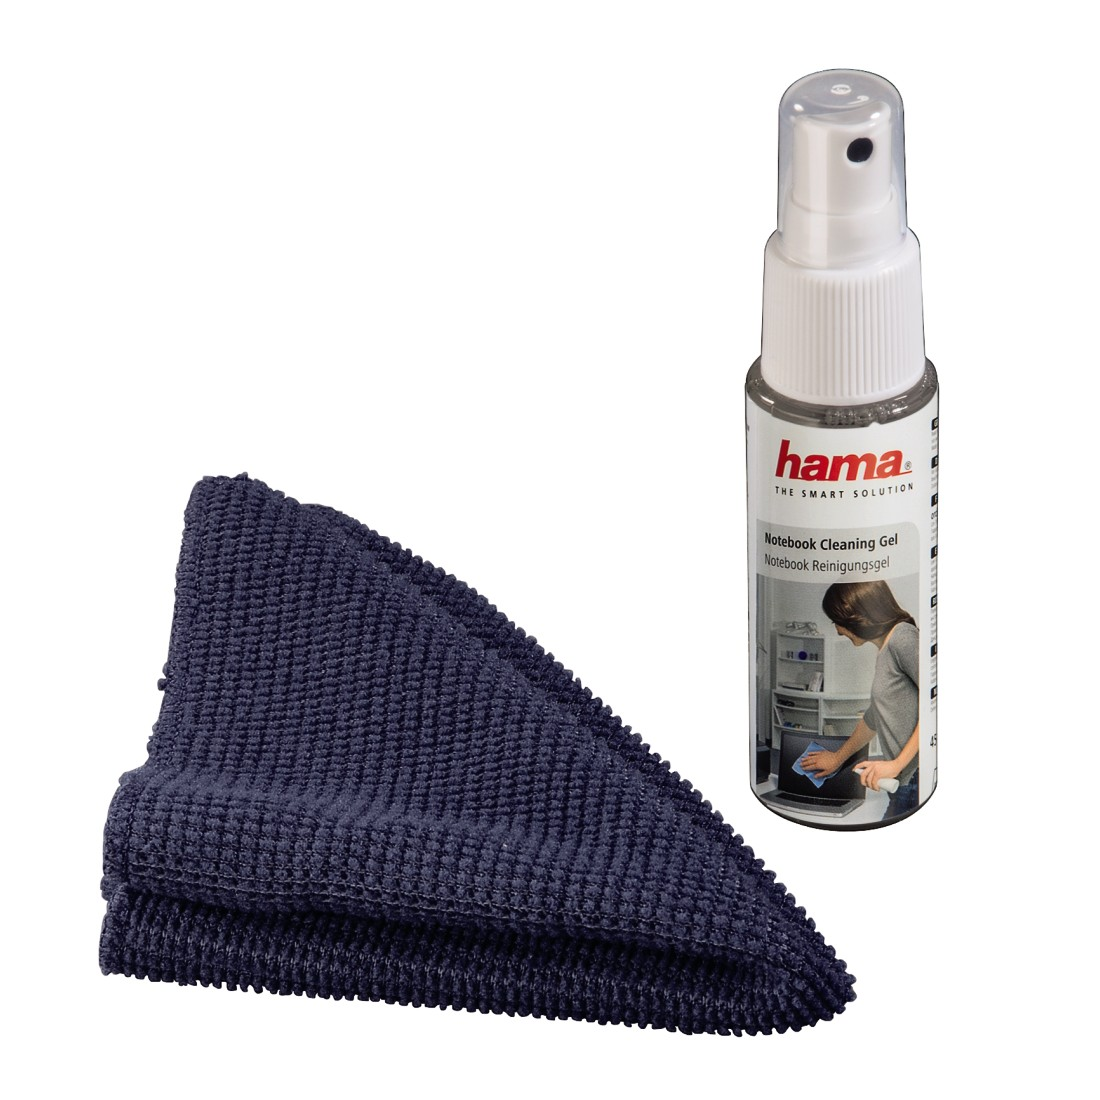 abx High-Res Image - Hama, Notebook Cleaning Gel and Microfiber Cloth